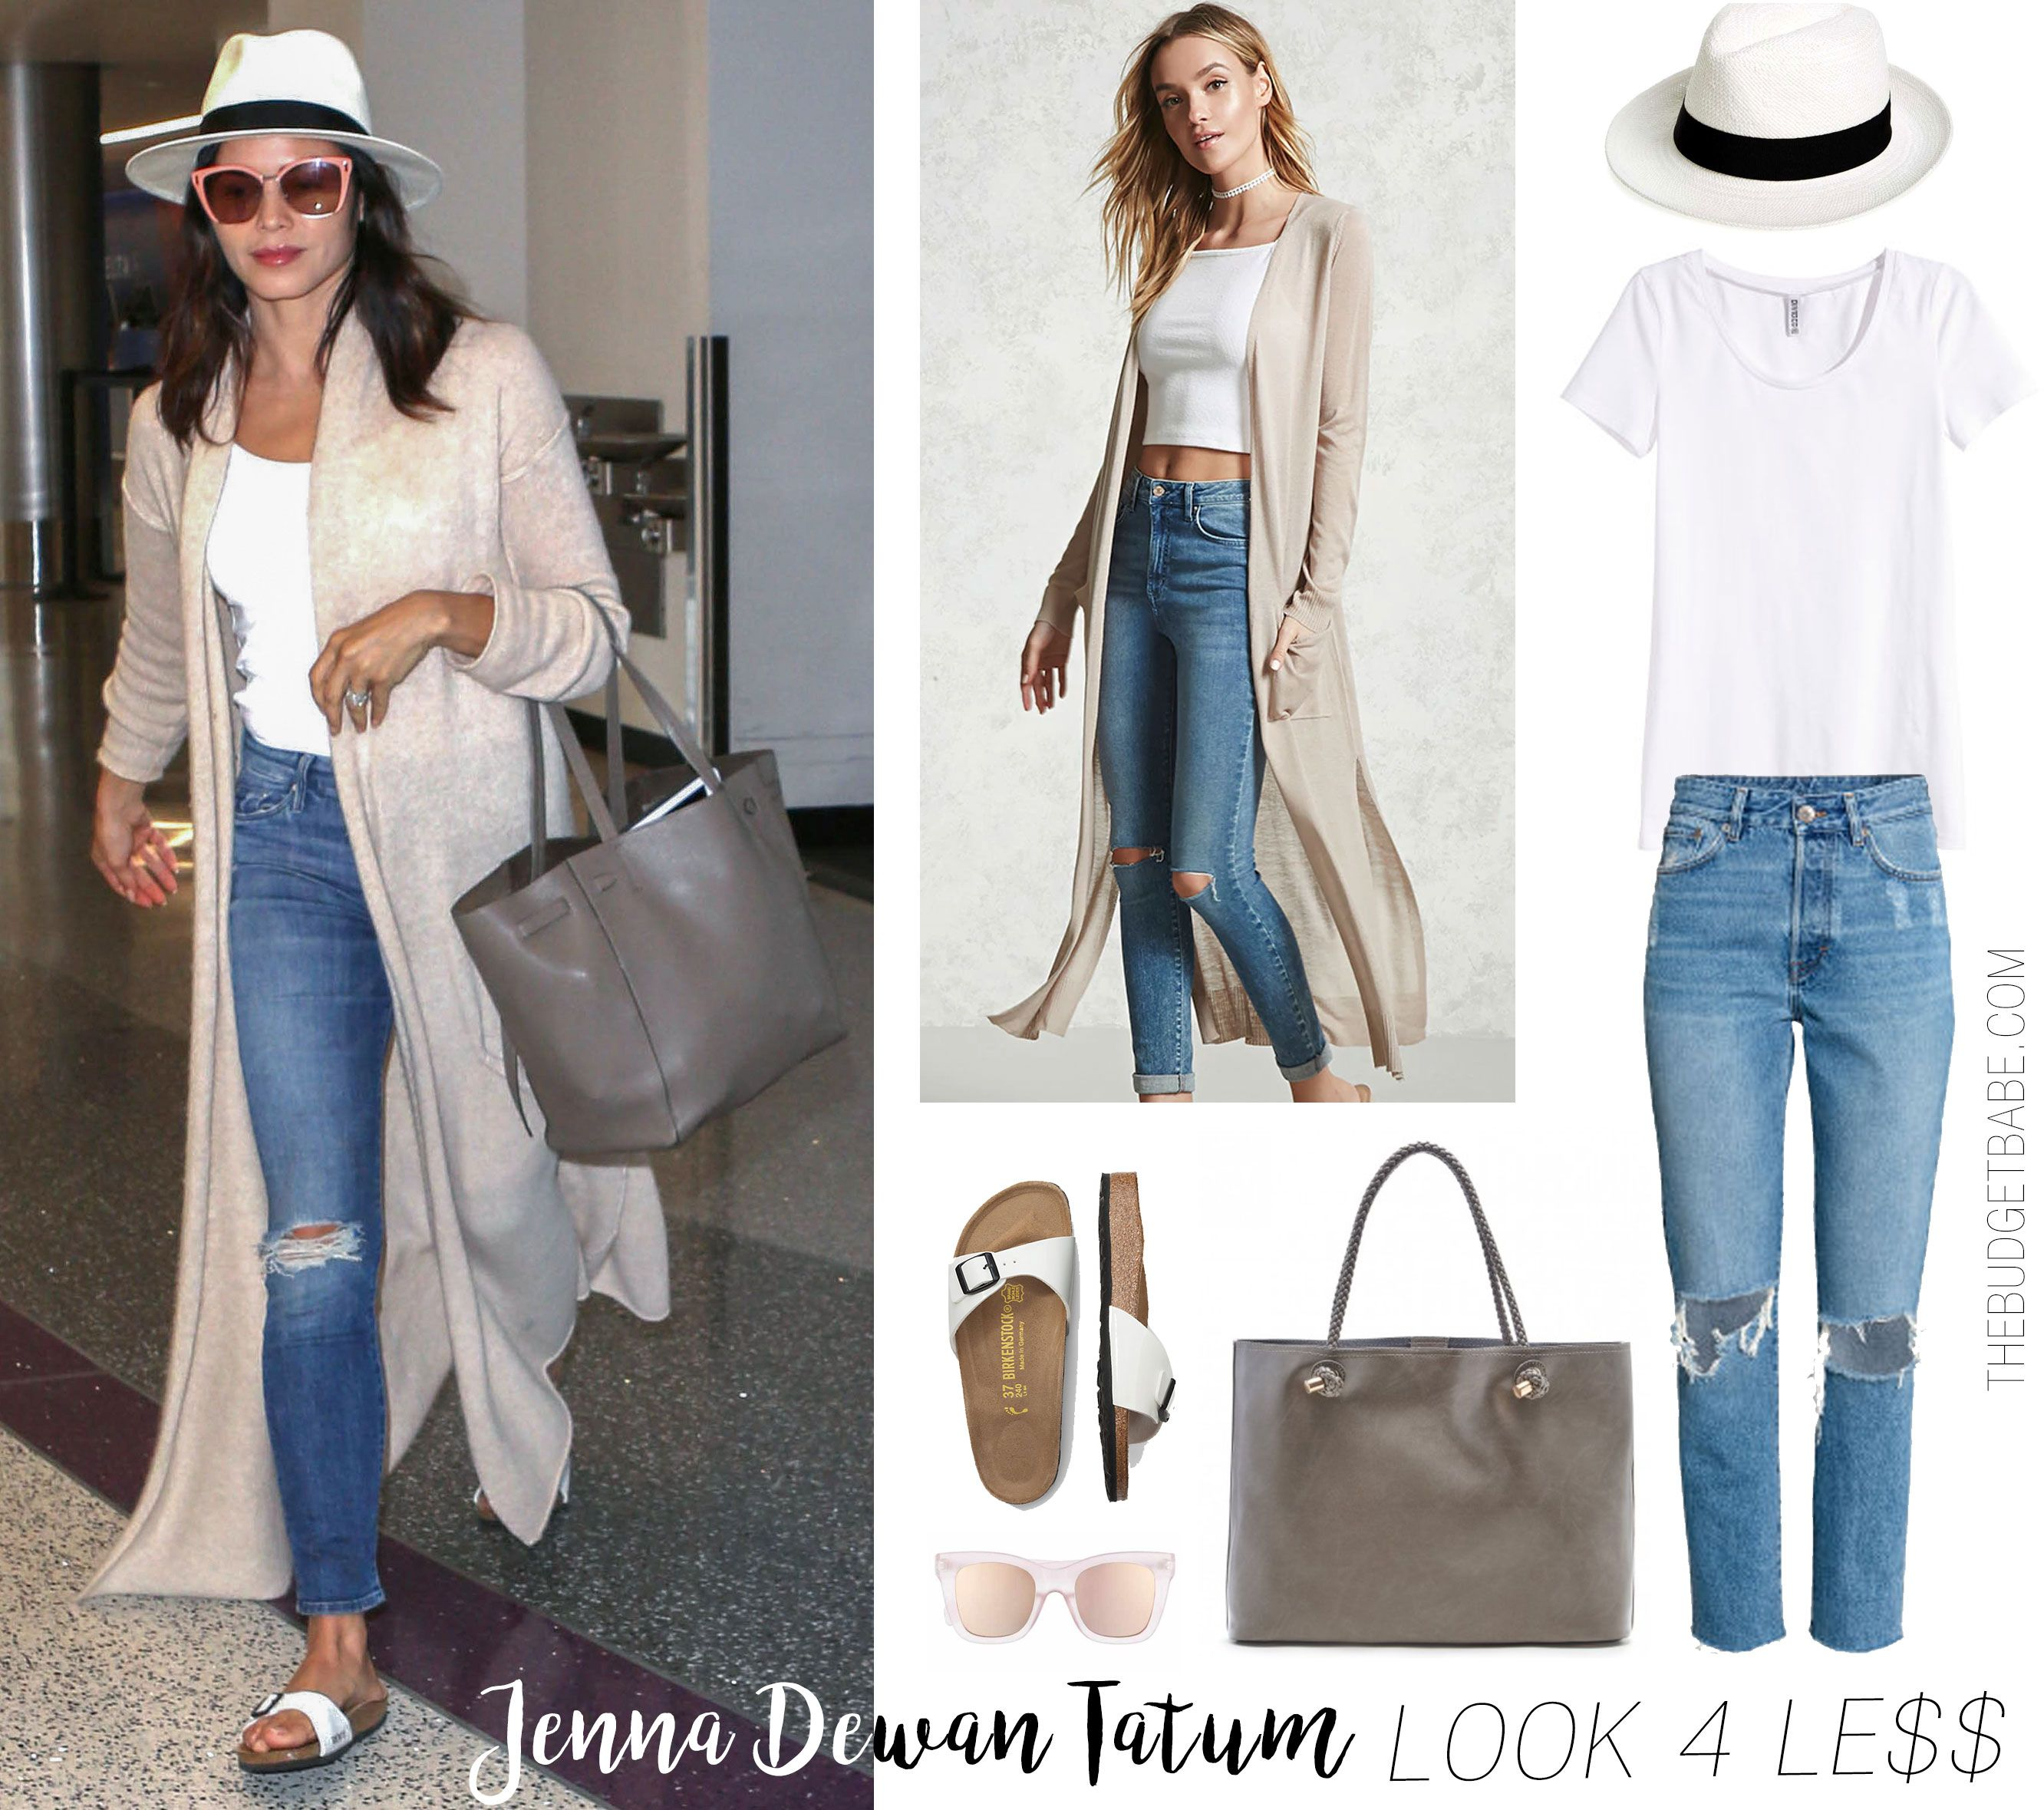 70fd462b6051 Uptown Chic  Nicky Hilton s Neutral Look for Less